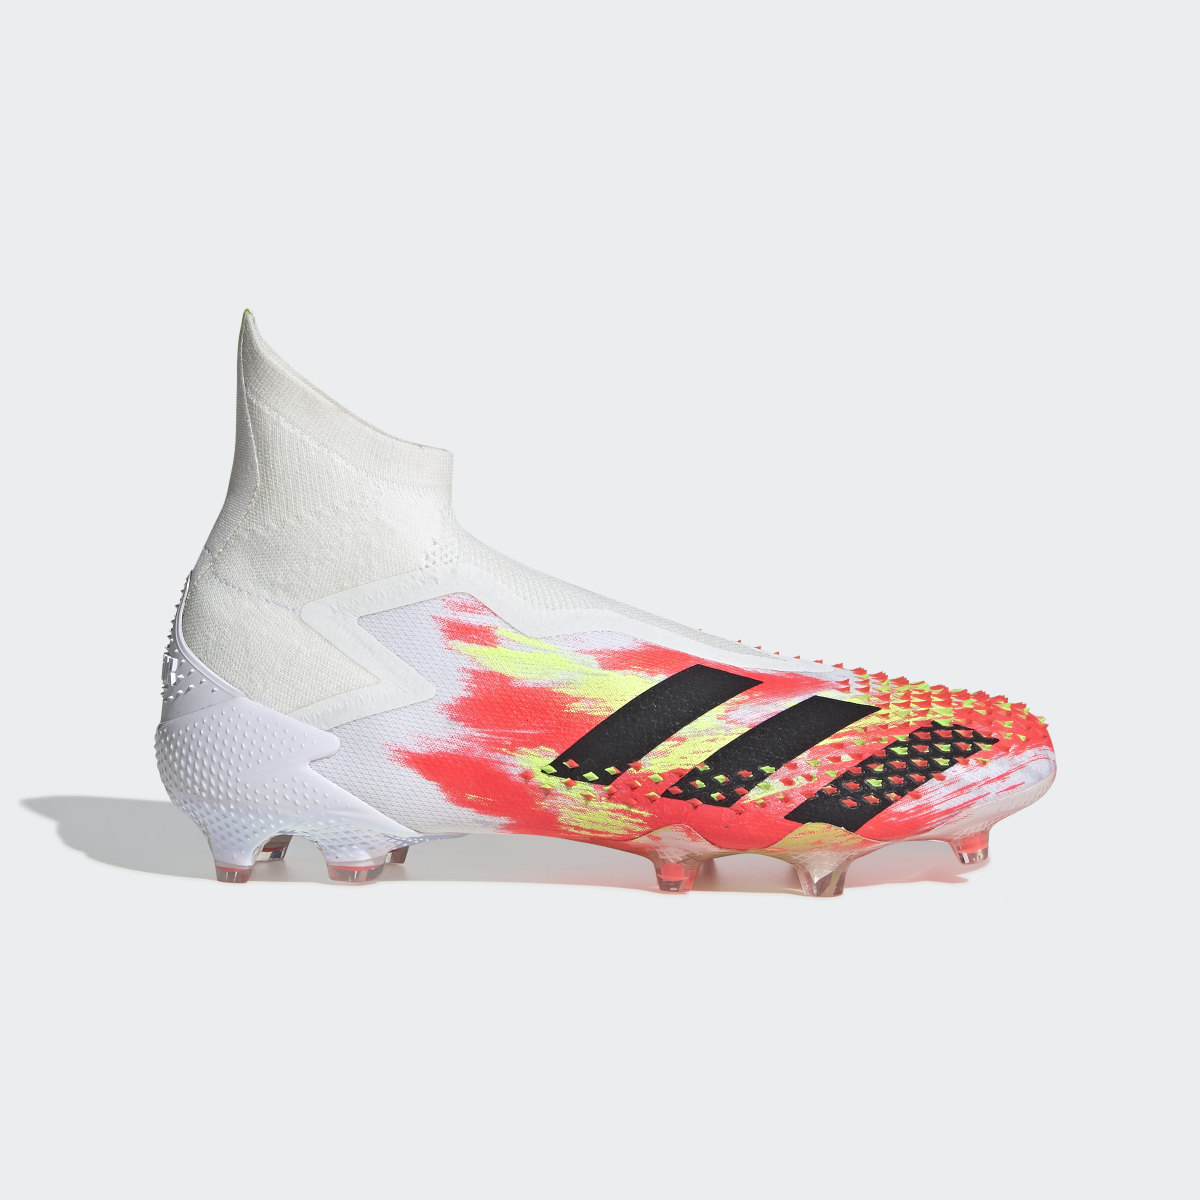 adidas Football Predator, Nemeziz, X and Copa | adidas